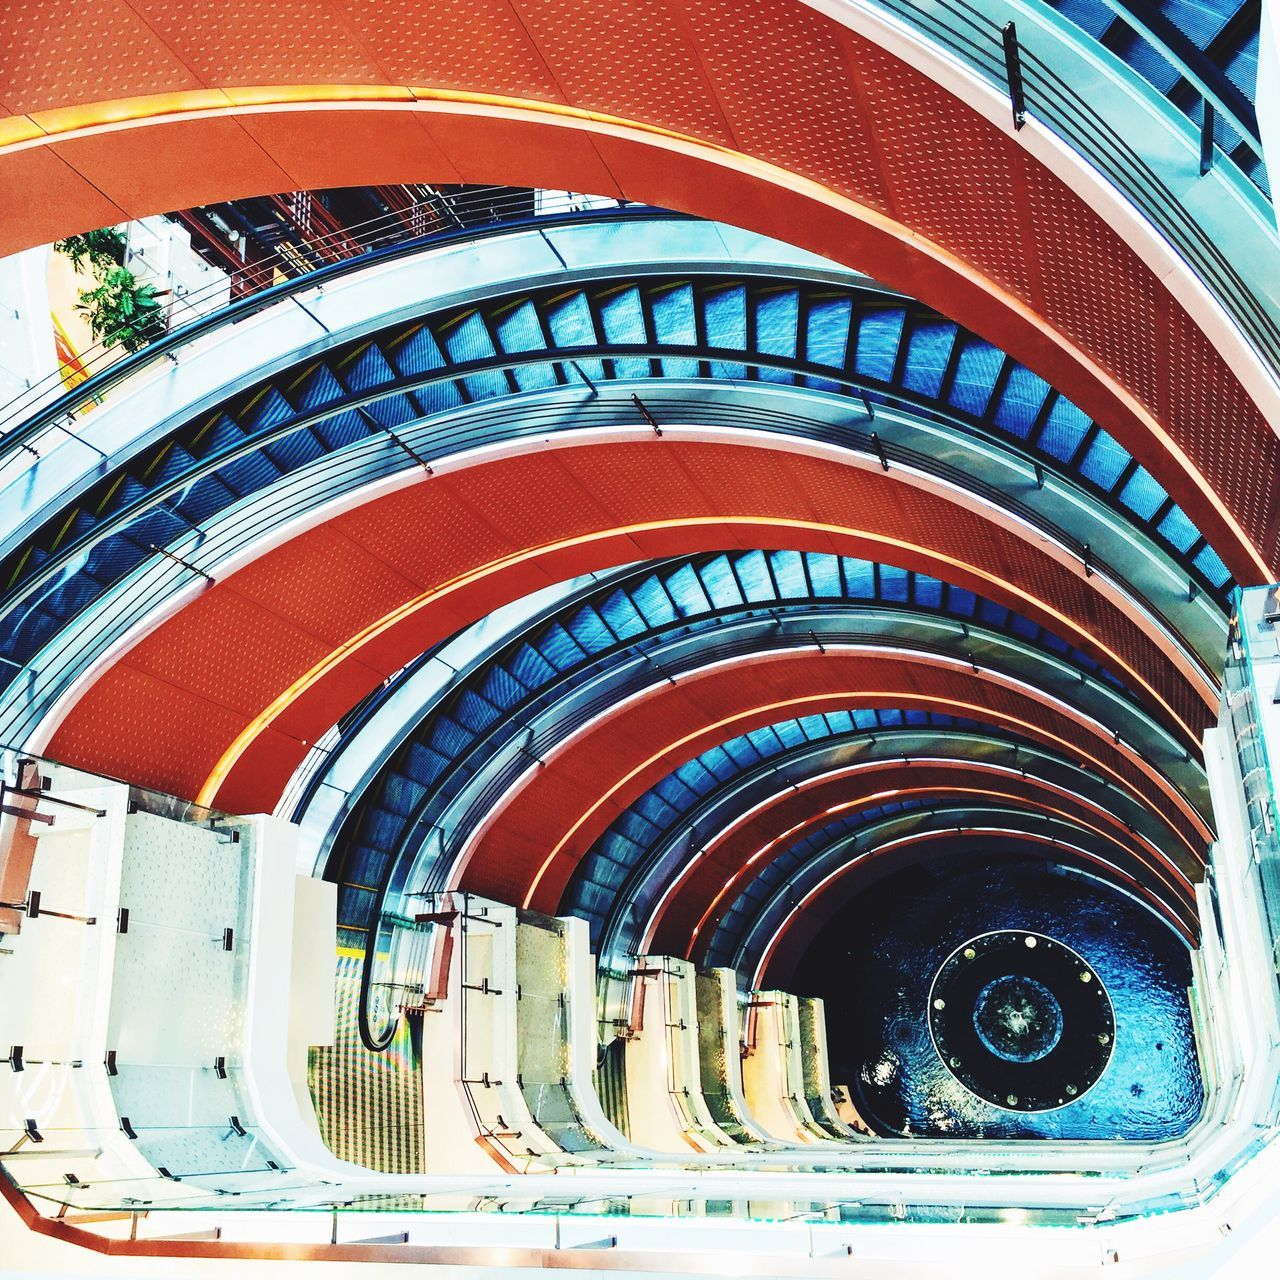 Shanghai photography -- stair eye My Street Photography Shanghai Shanghai Photography Streetphotography Stairs Circle Stair No People Spiral Staircase Modern From My Point Of View Shanghai Streets My City IPhoneography Taking Photos